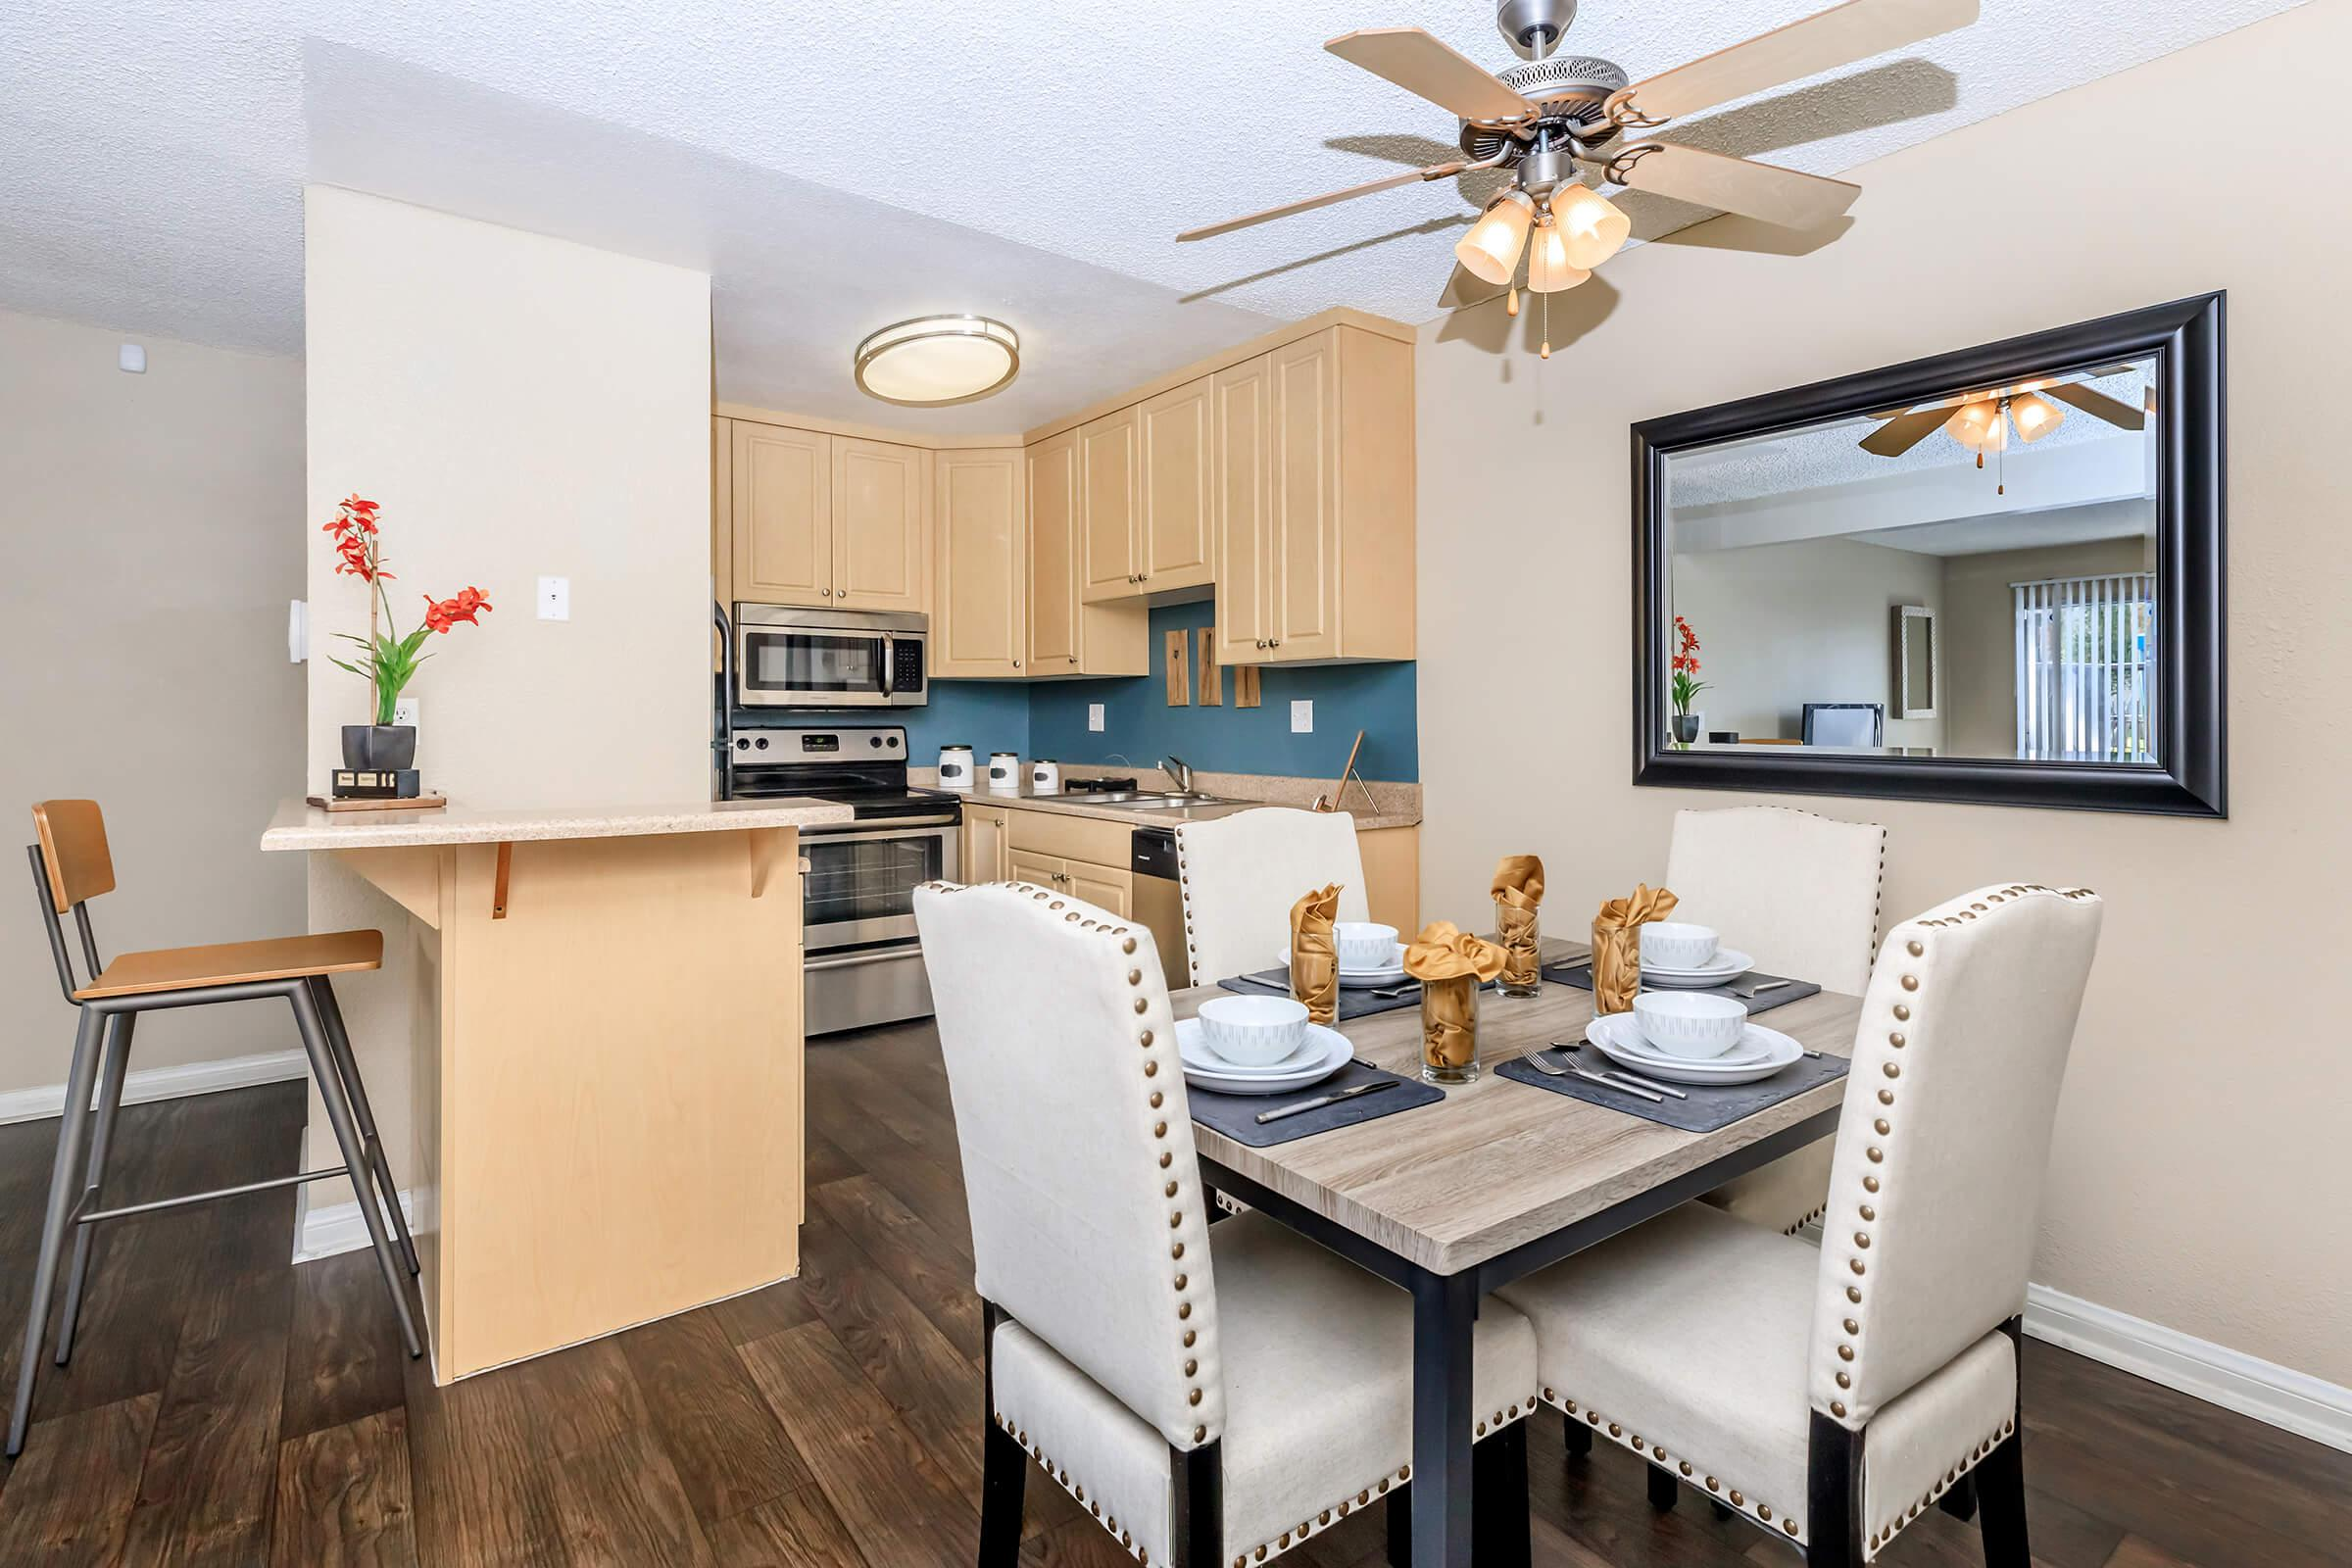 a kitchen with an island in the middle of a room